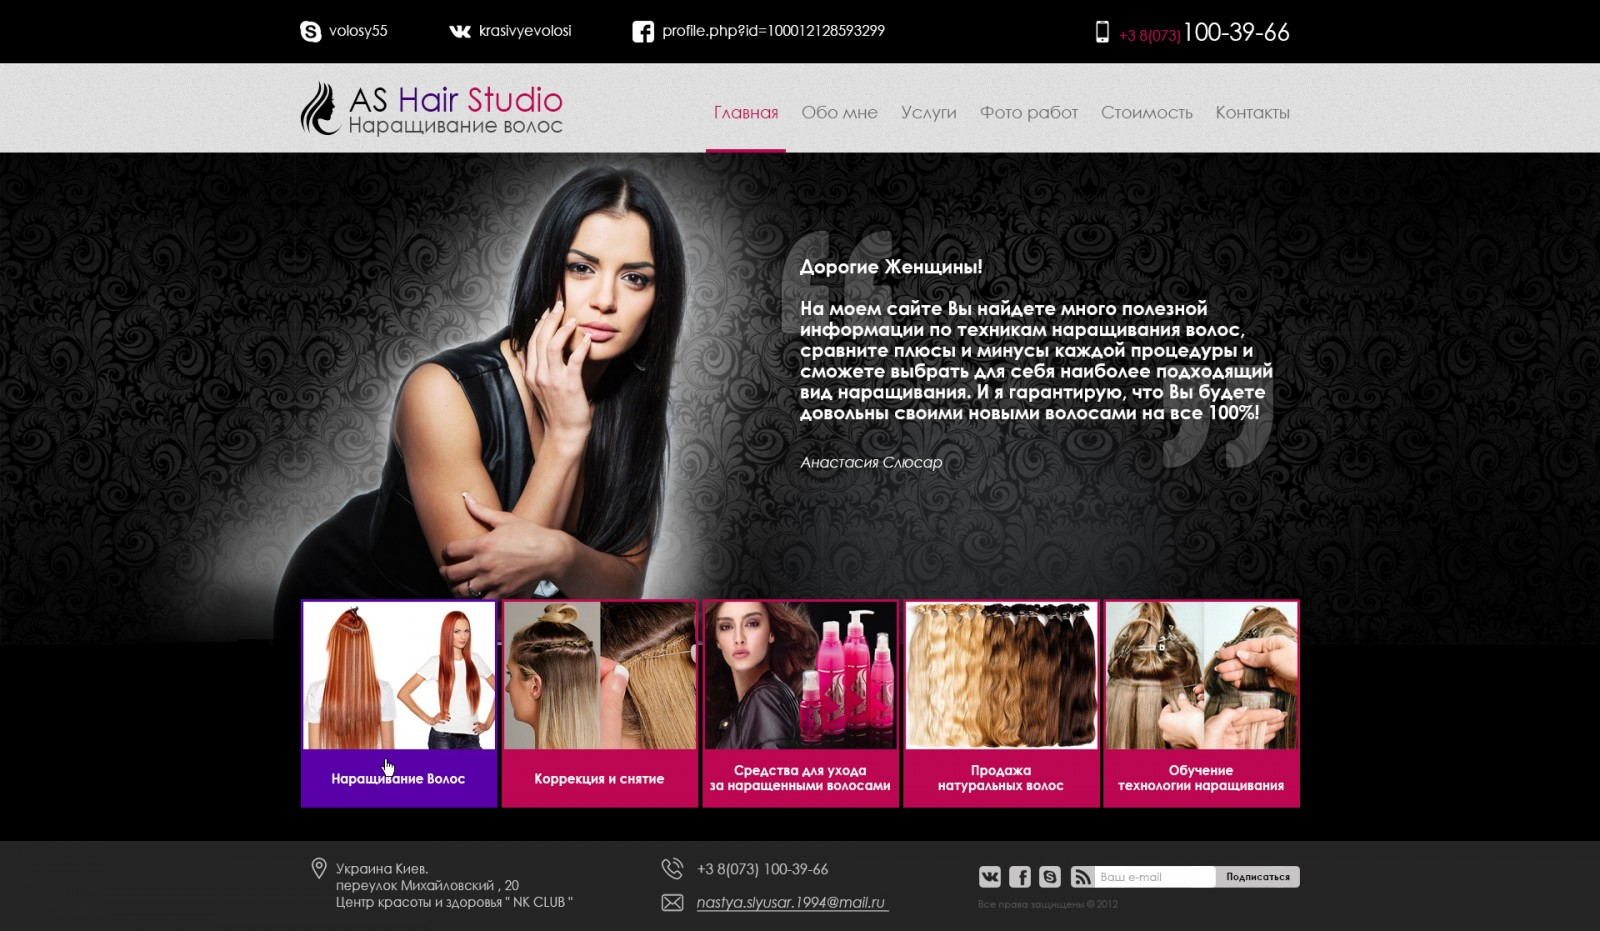 AS Hair Studio